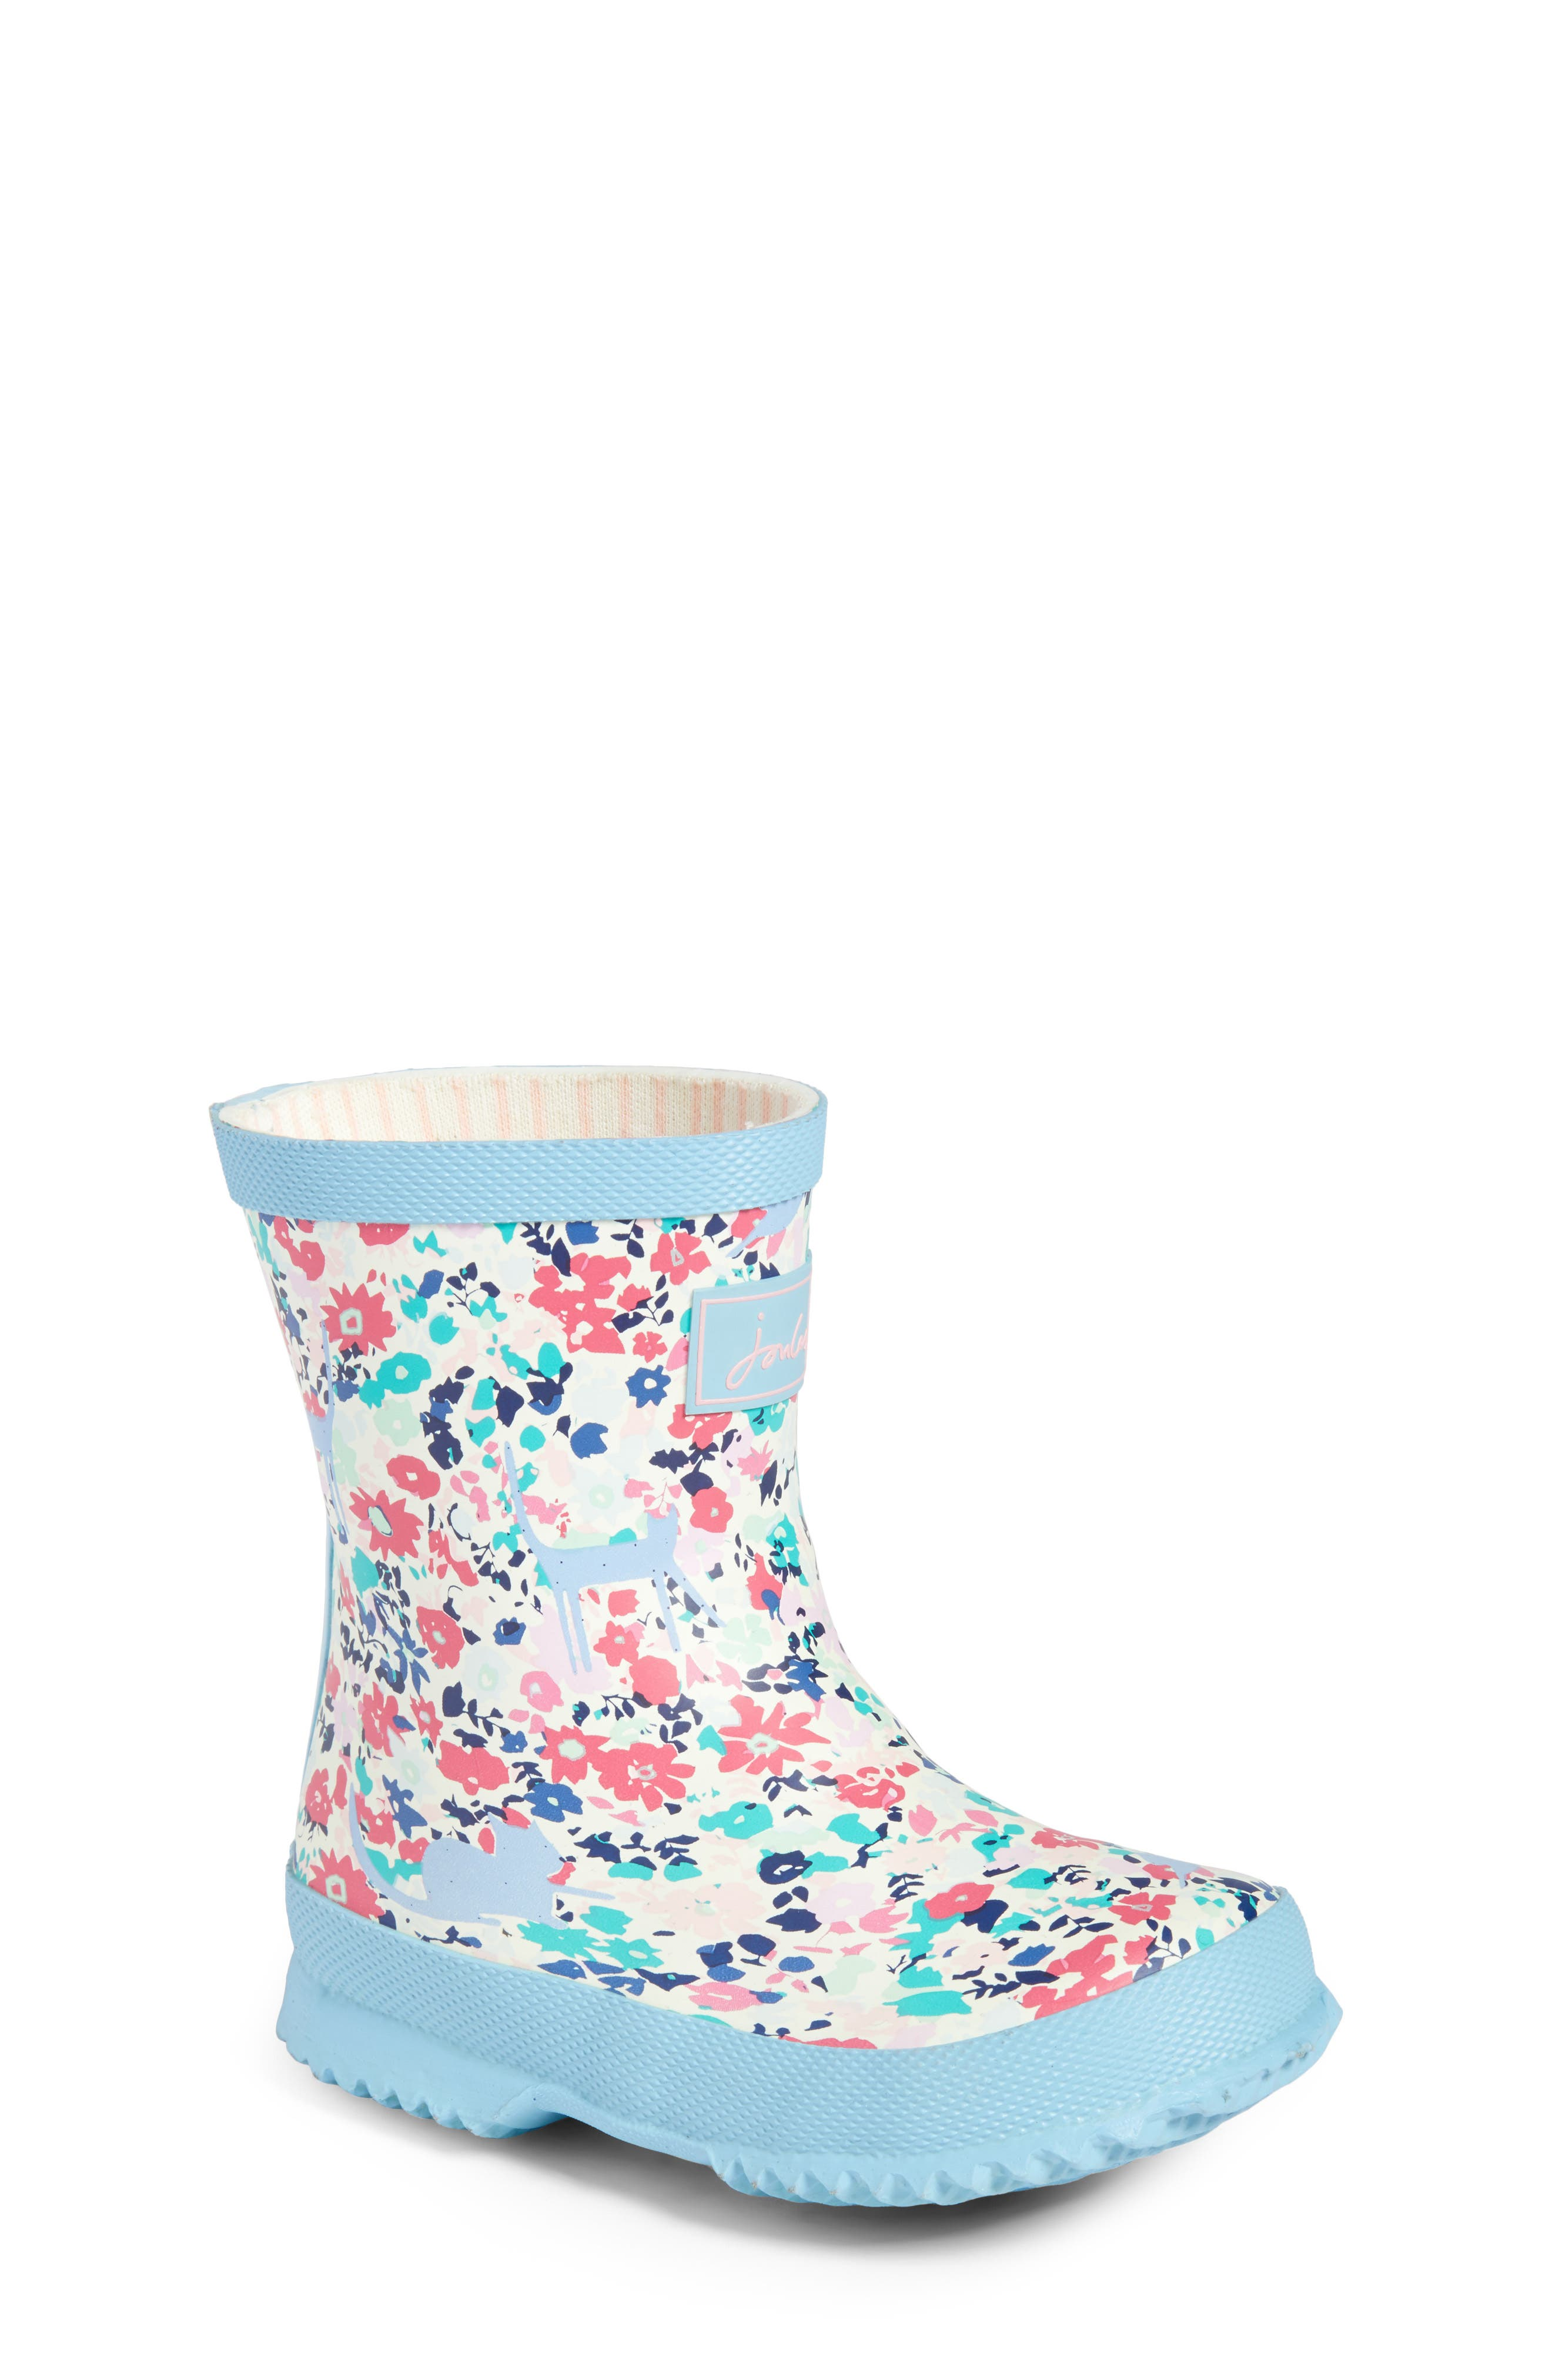 Baby Welly Print Waterproof Boot,                         Main,                         color, Pretty Kitty Ditsy